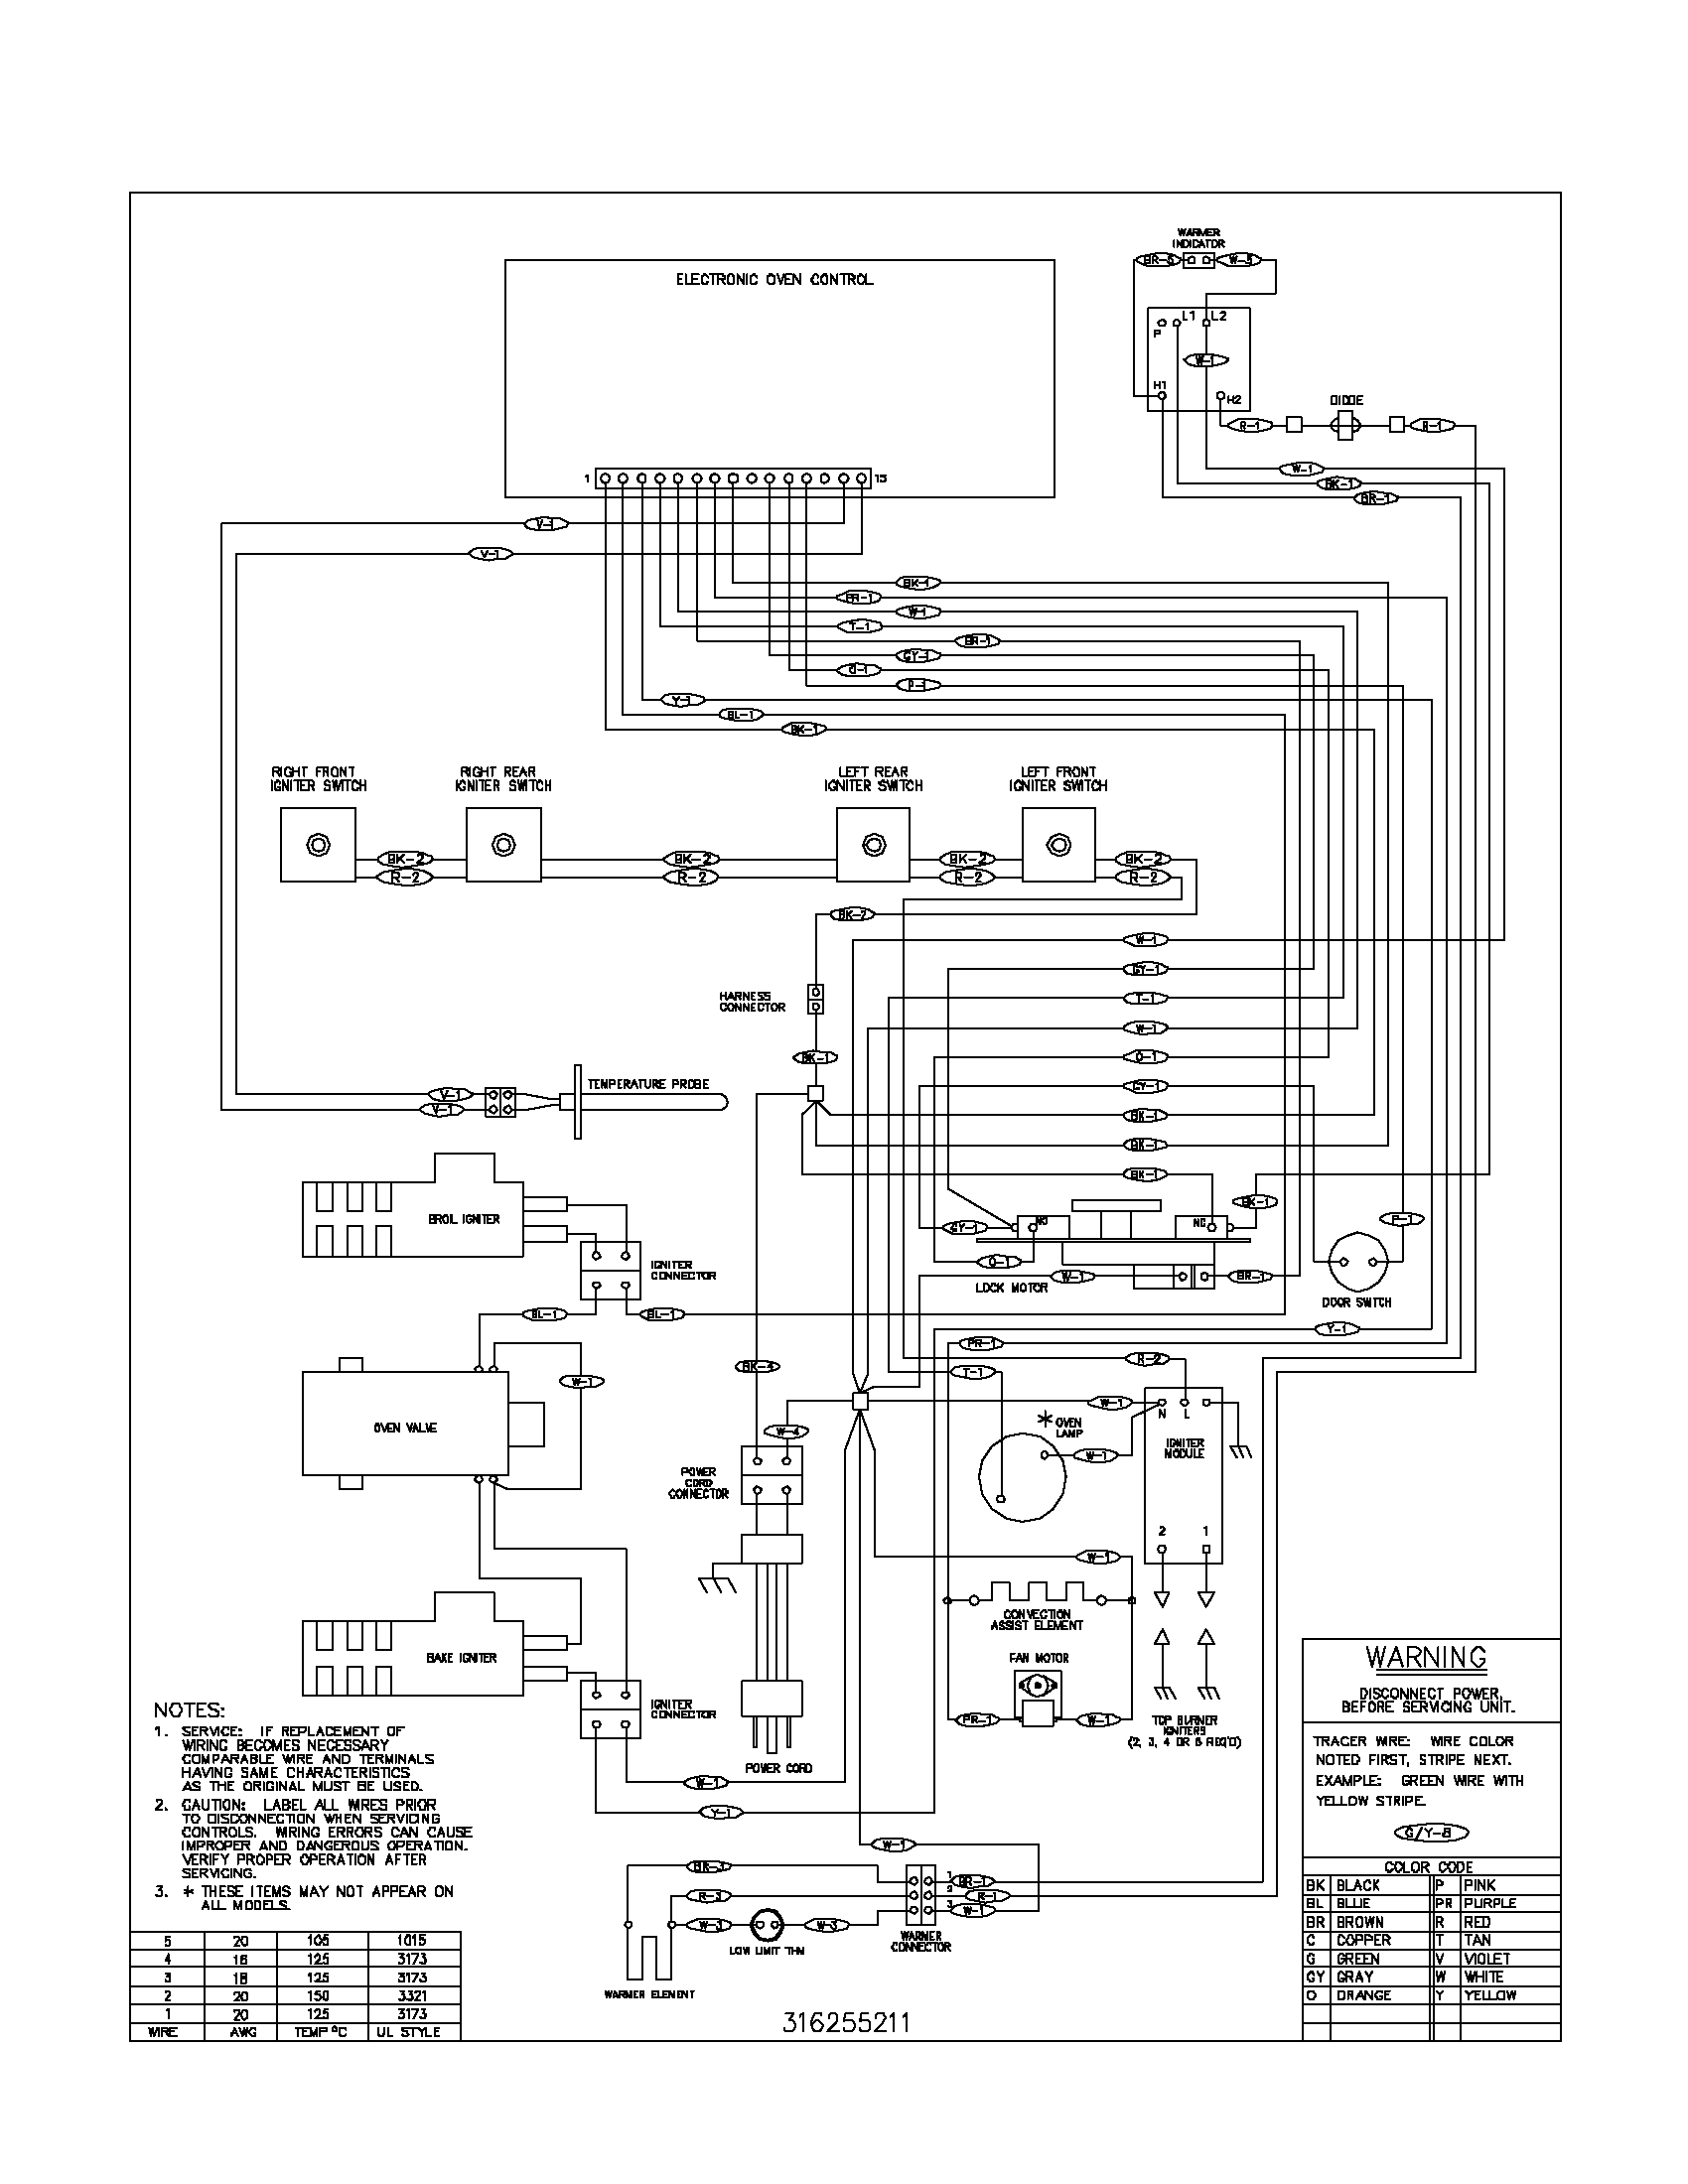 1990 Western Star Wiring Schematic Another Diagrams Chevy Plow Dump Truck Diagram 43 2000 Fuse Panel